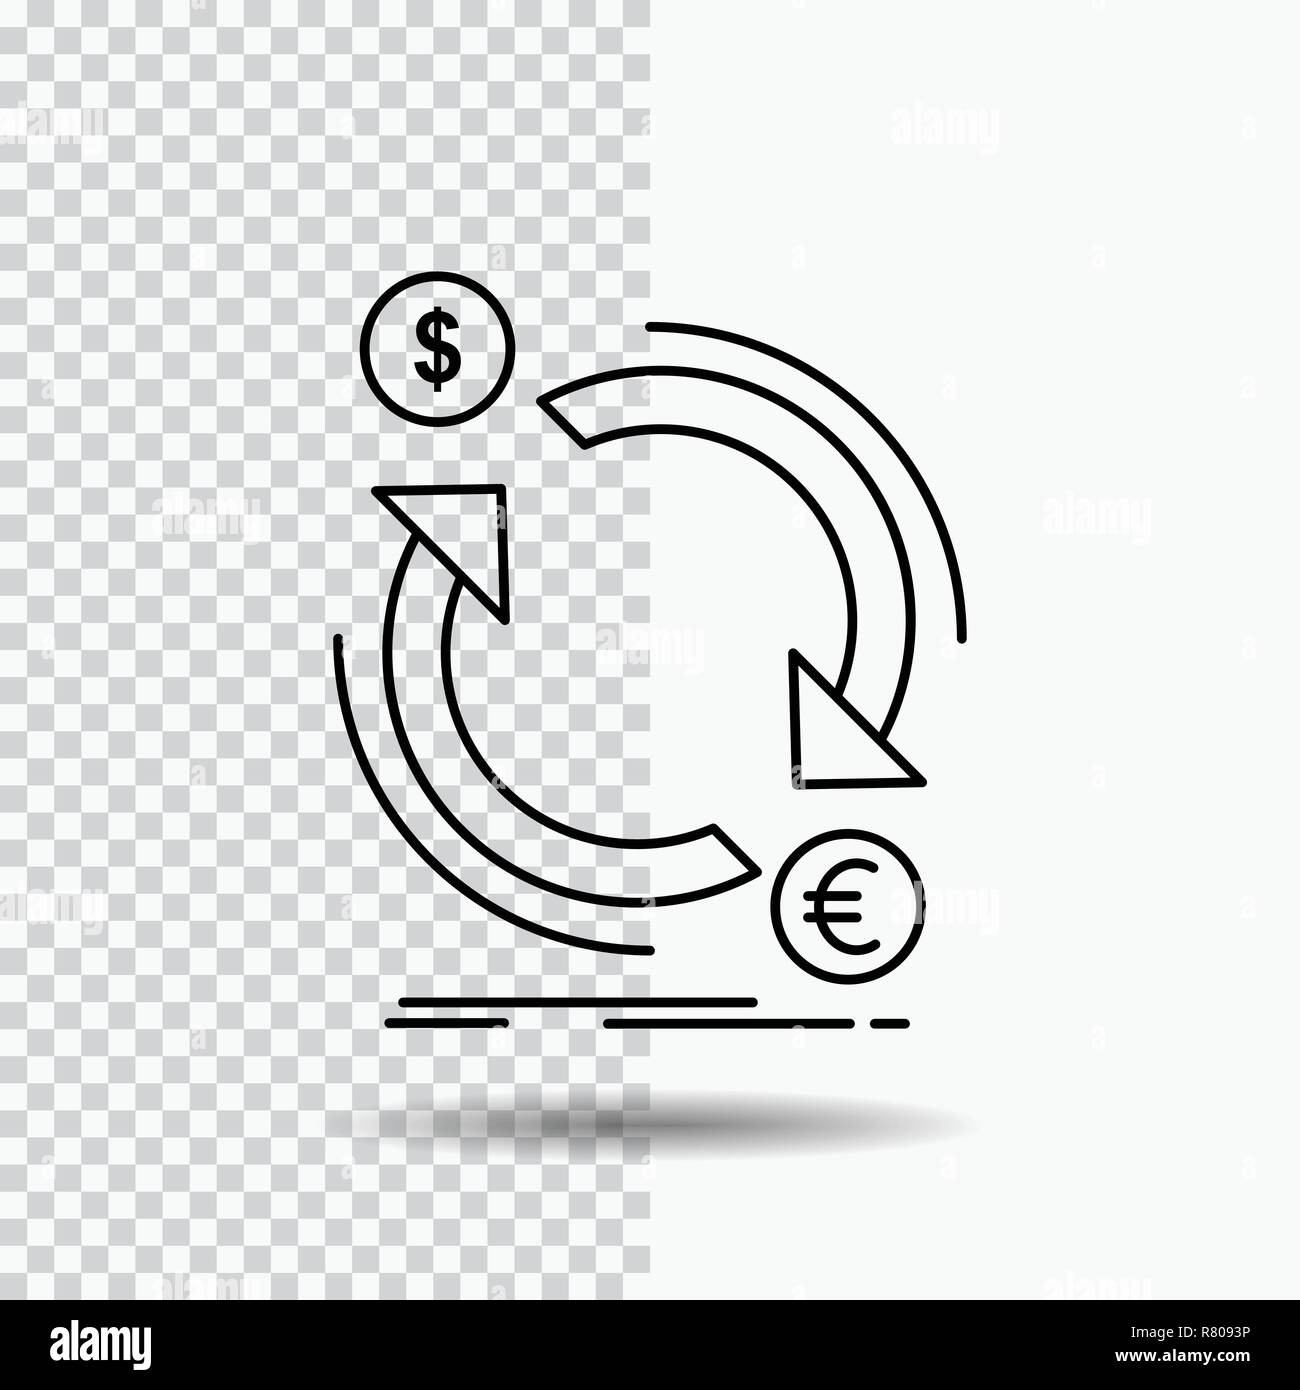 exchange, currency, finance, money, convert Line Icon on Transparent